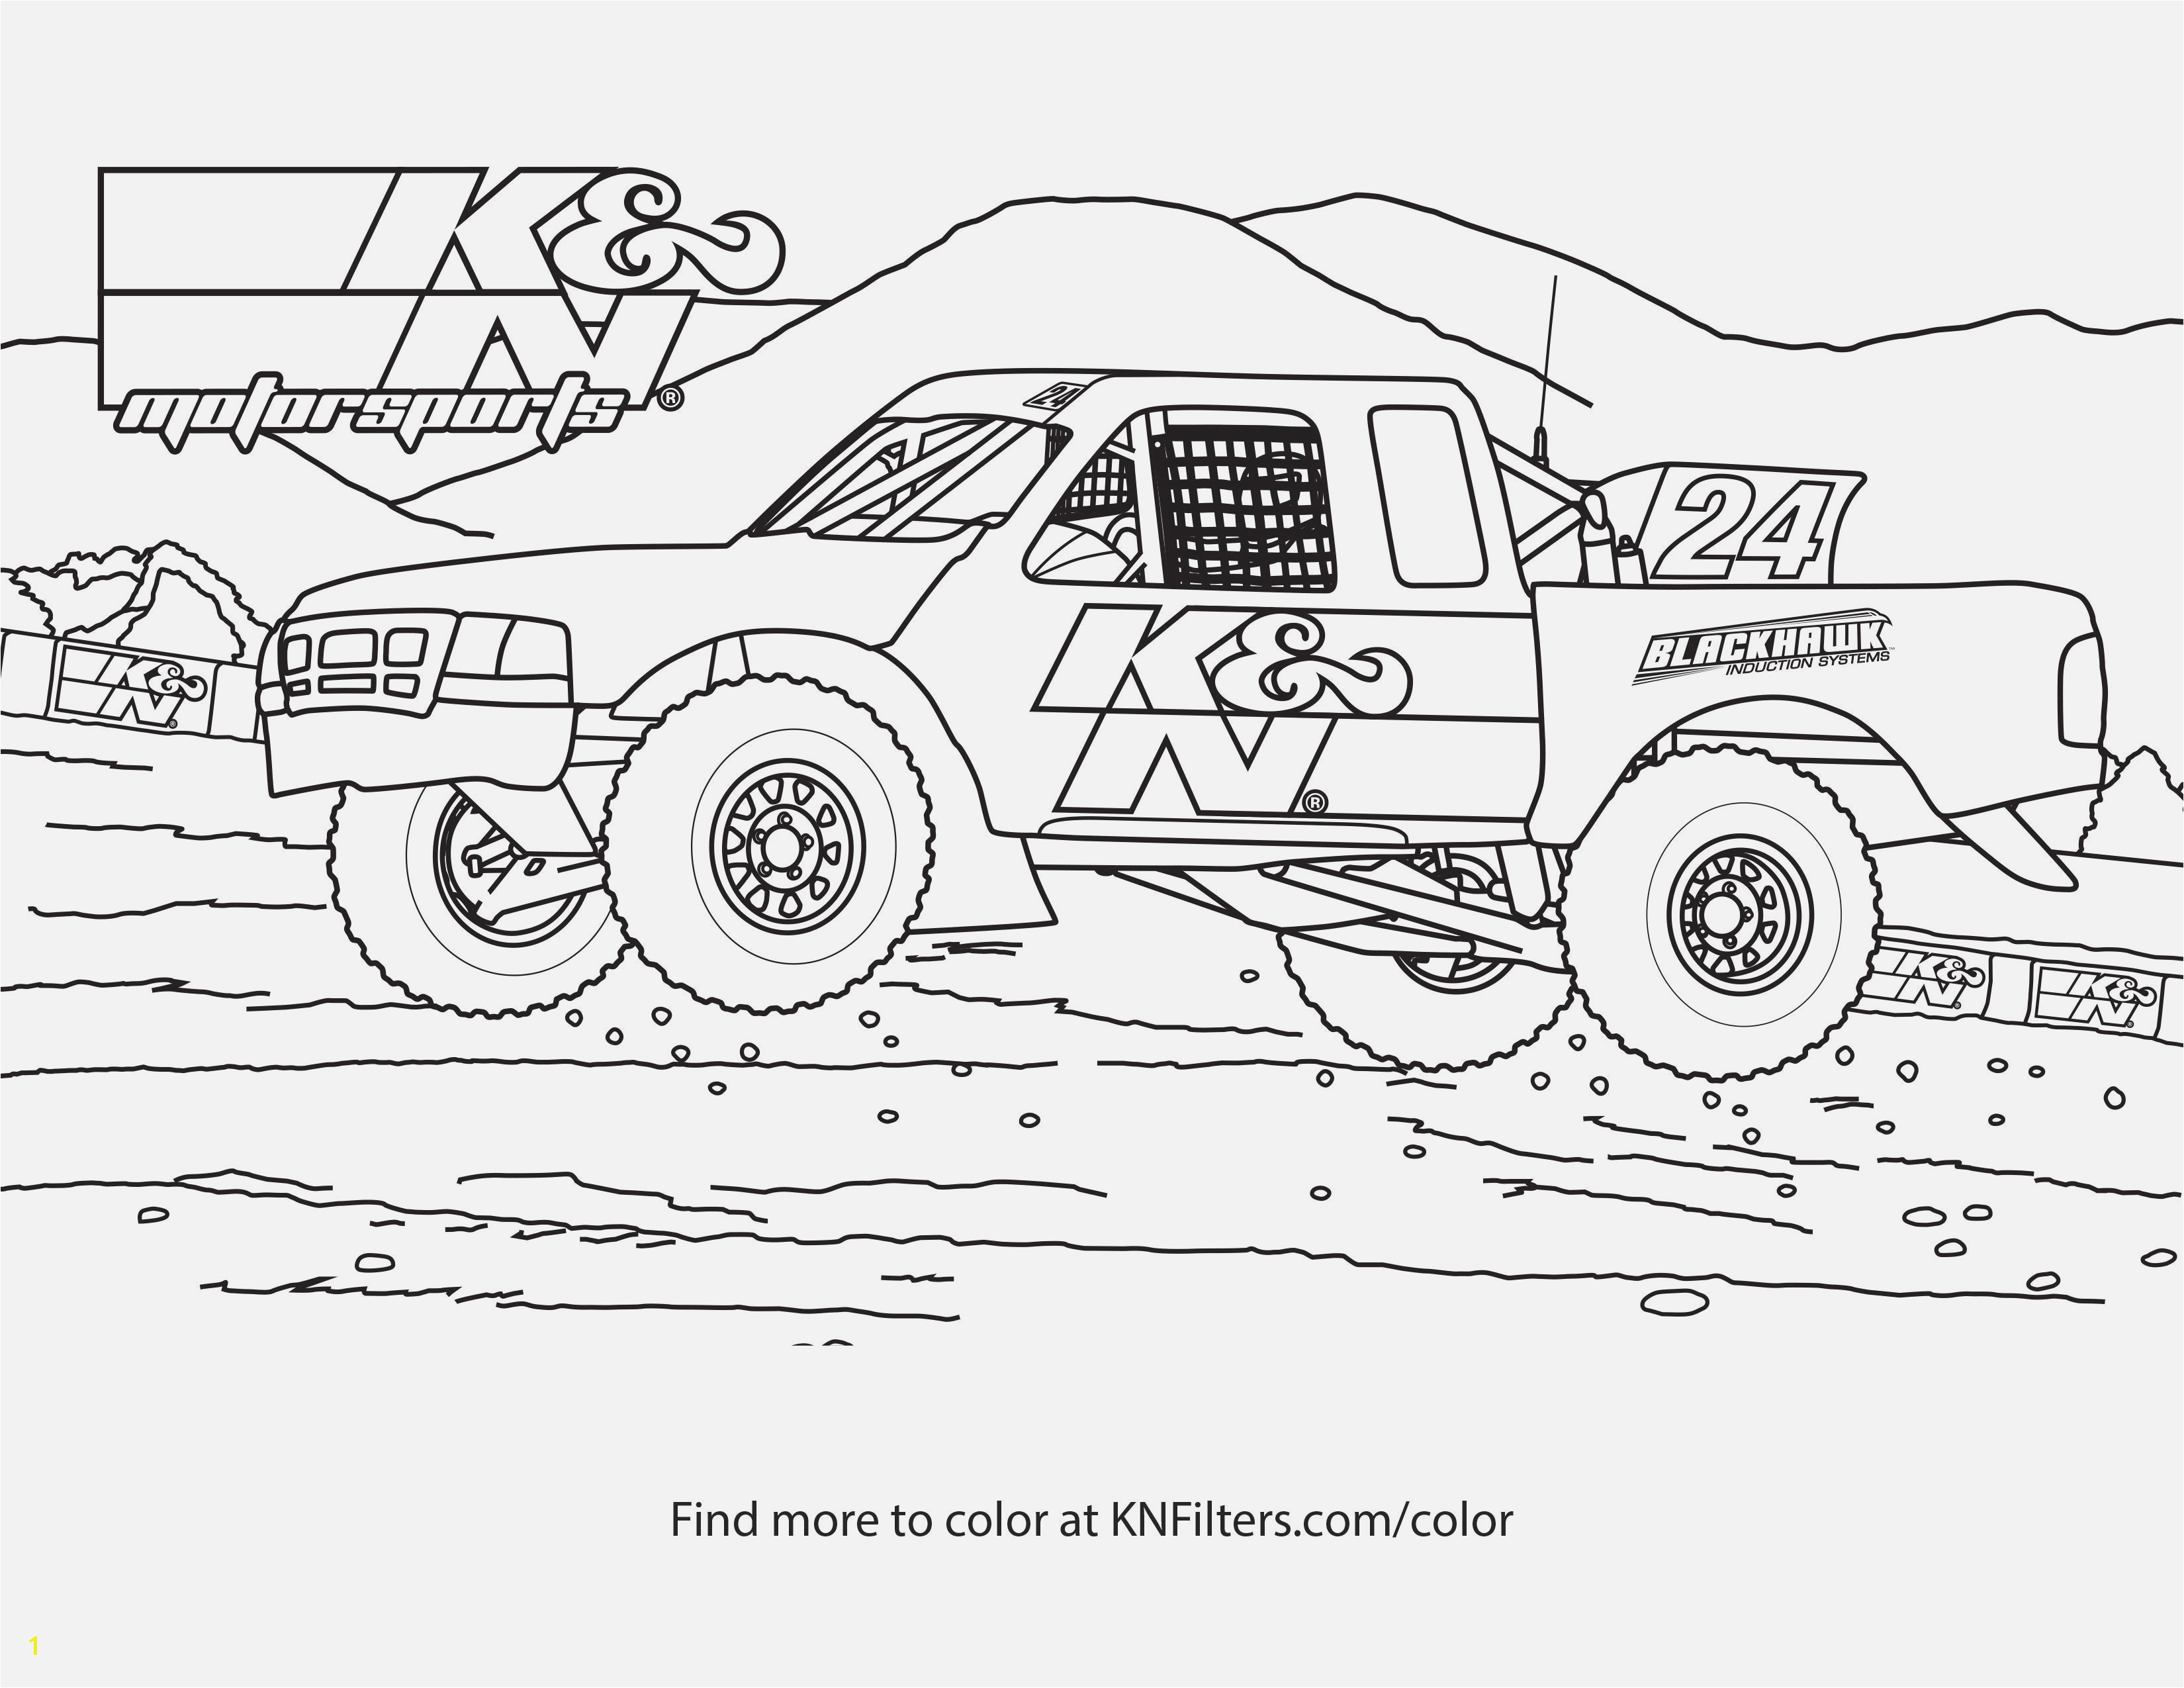 Dirt Bike Coloring Pages Easy and Fun K&n Printable Coloring Pages for Kids Dirt Bike